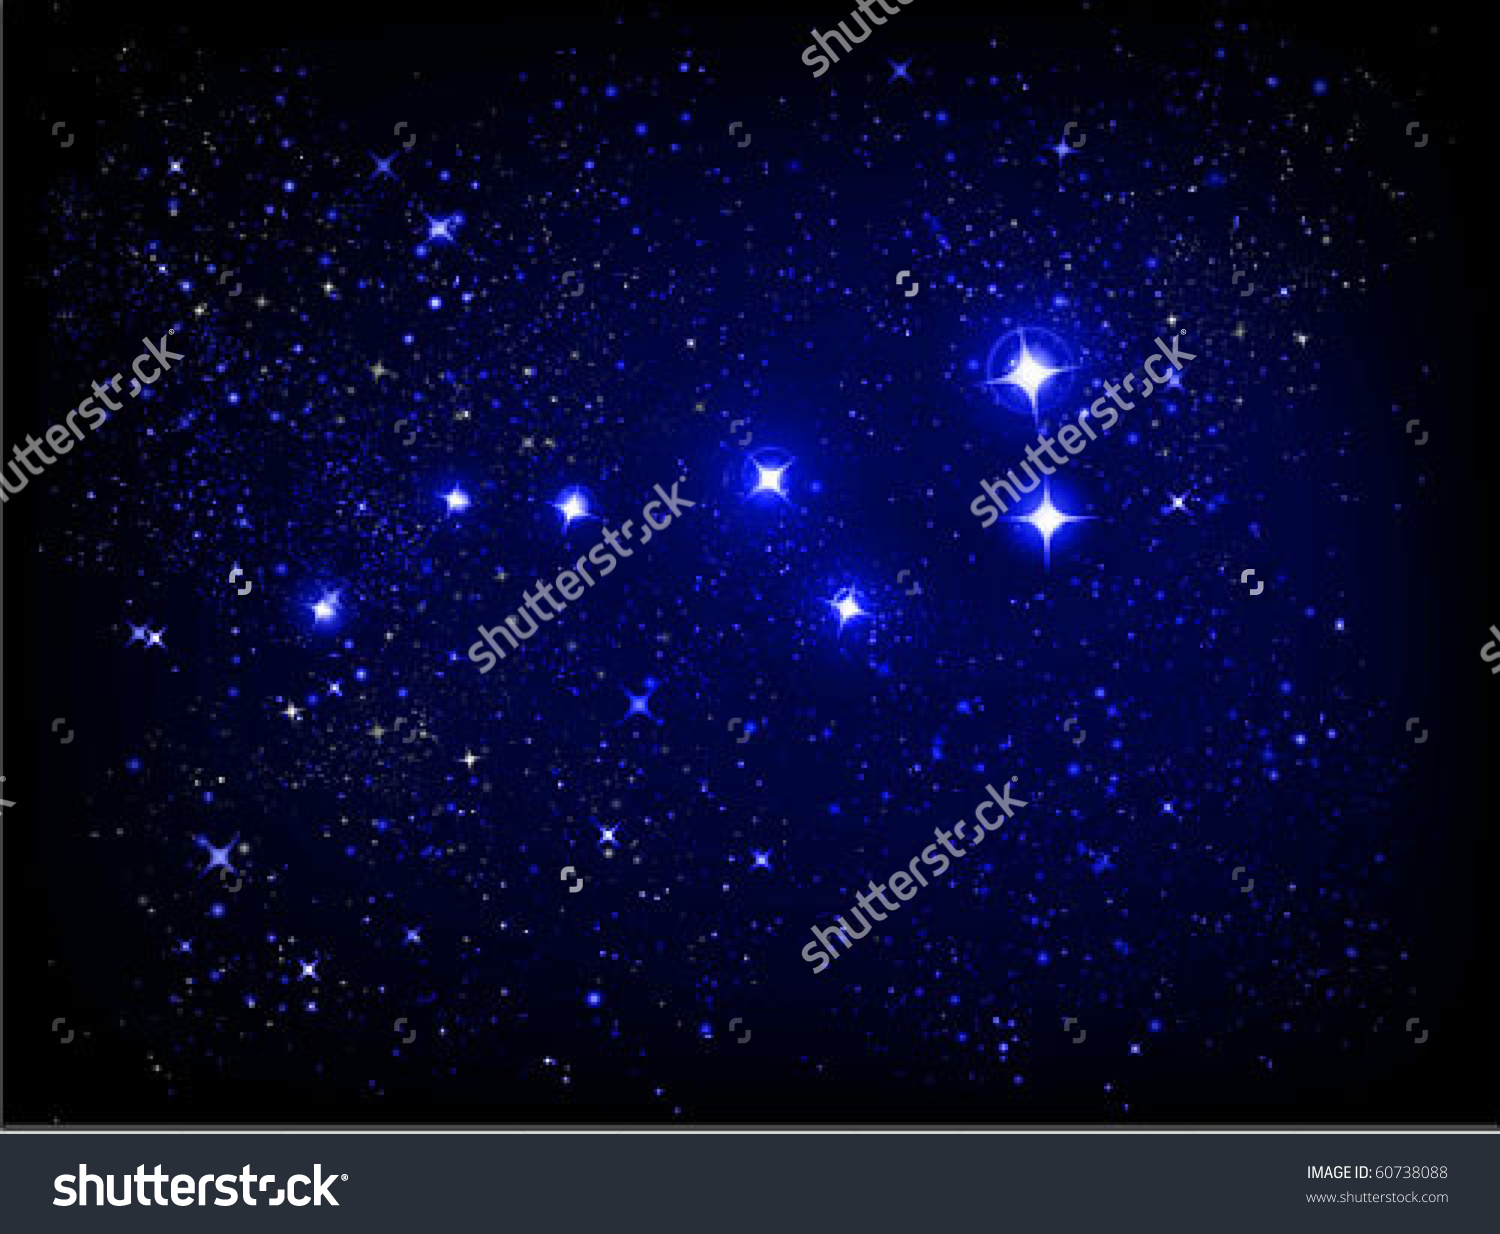 Vector Starry Sky And Ursa Major (Larger Bear) Constellation.